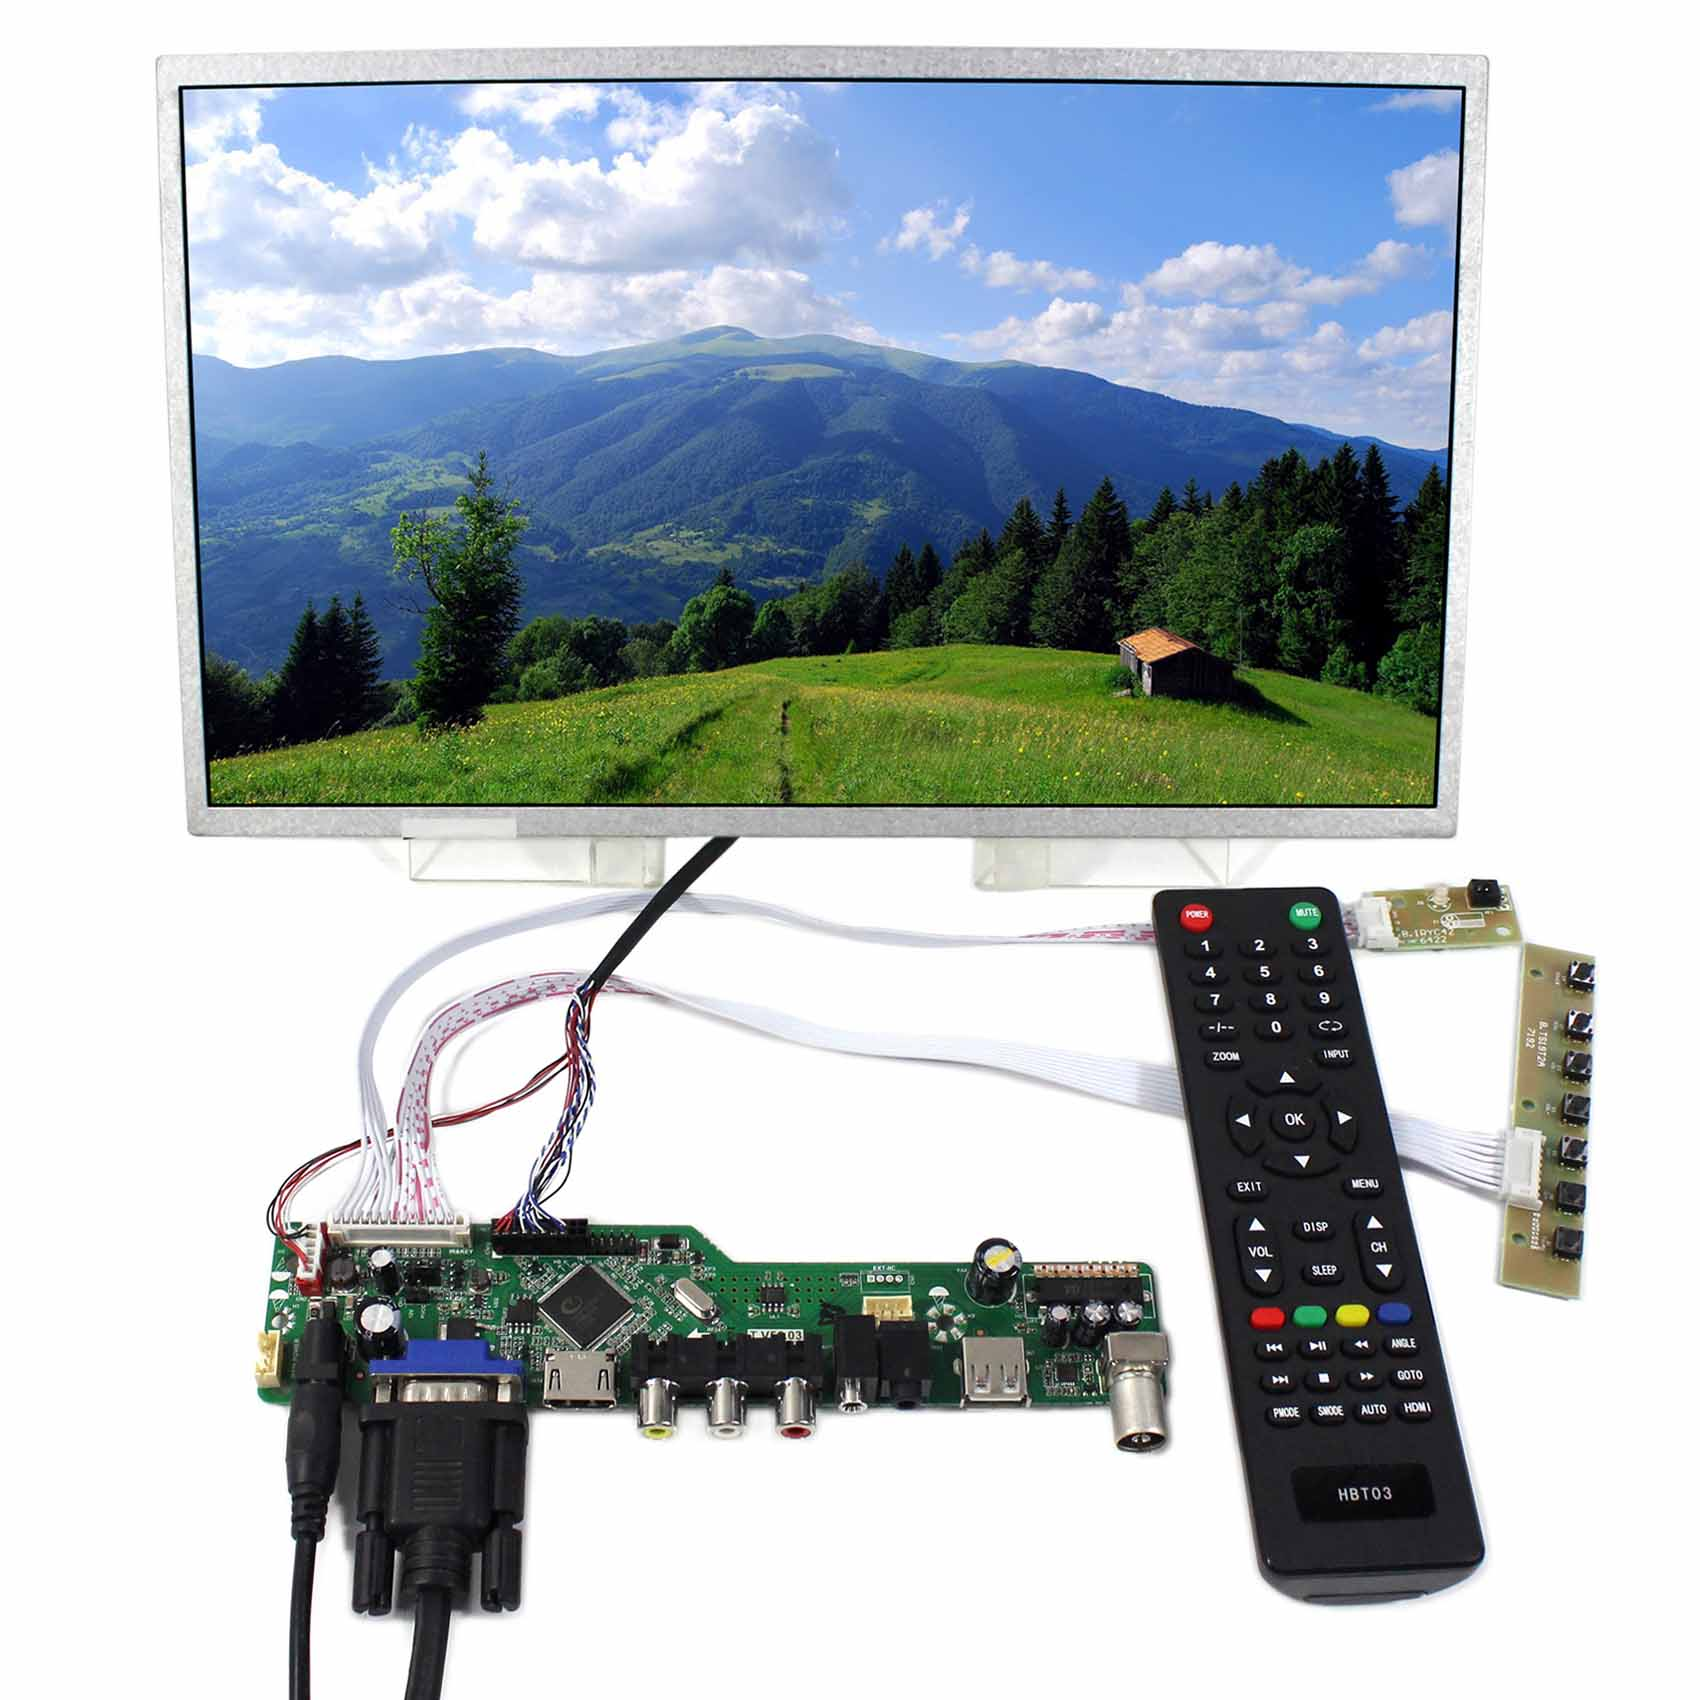 TV HDMI VGA AV USB AUDIO LCD Controller Board 13.3inch N133B6 1366x768 LCD Screen tv hdmi vga av usb audio lcd controller board 10 1b101aw06 1024x600 lcd screen